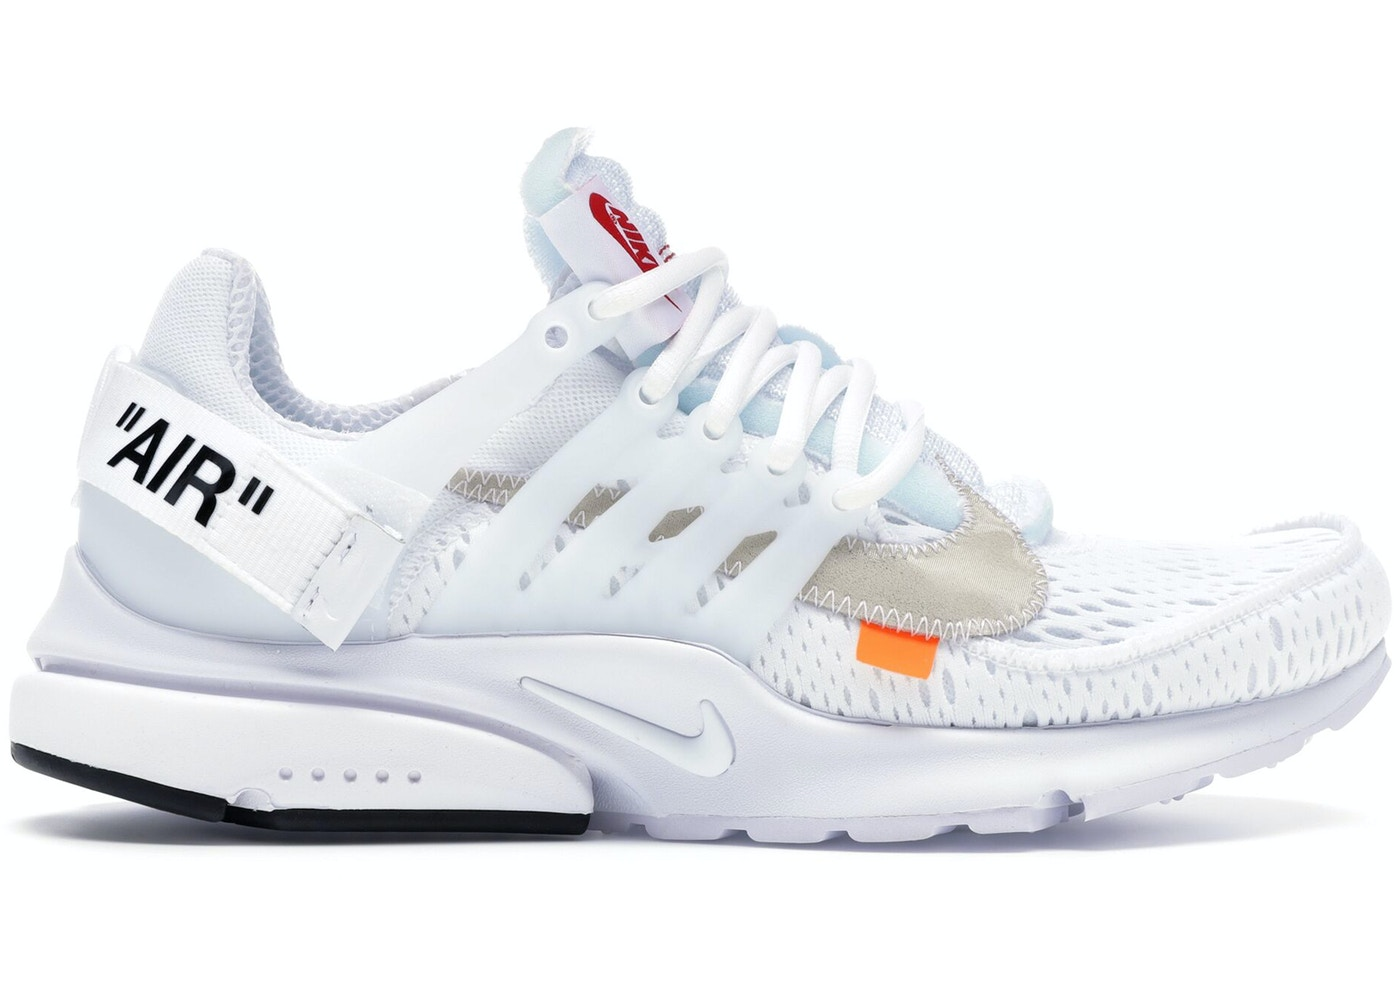 c6ca7203 Air Presto Off-White White (2018) - AA3830-100